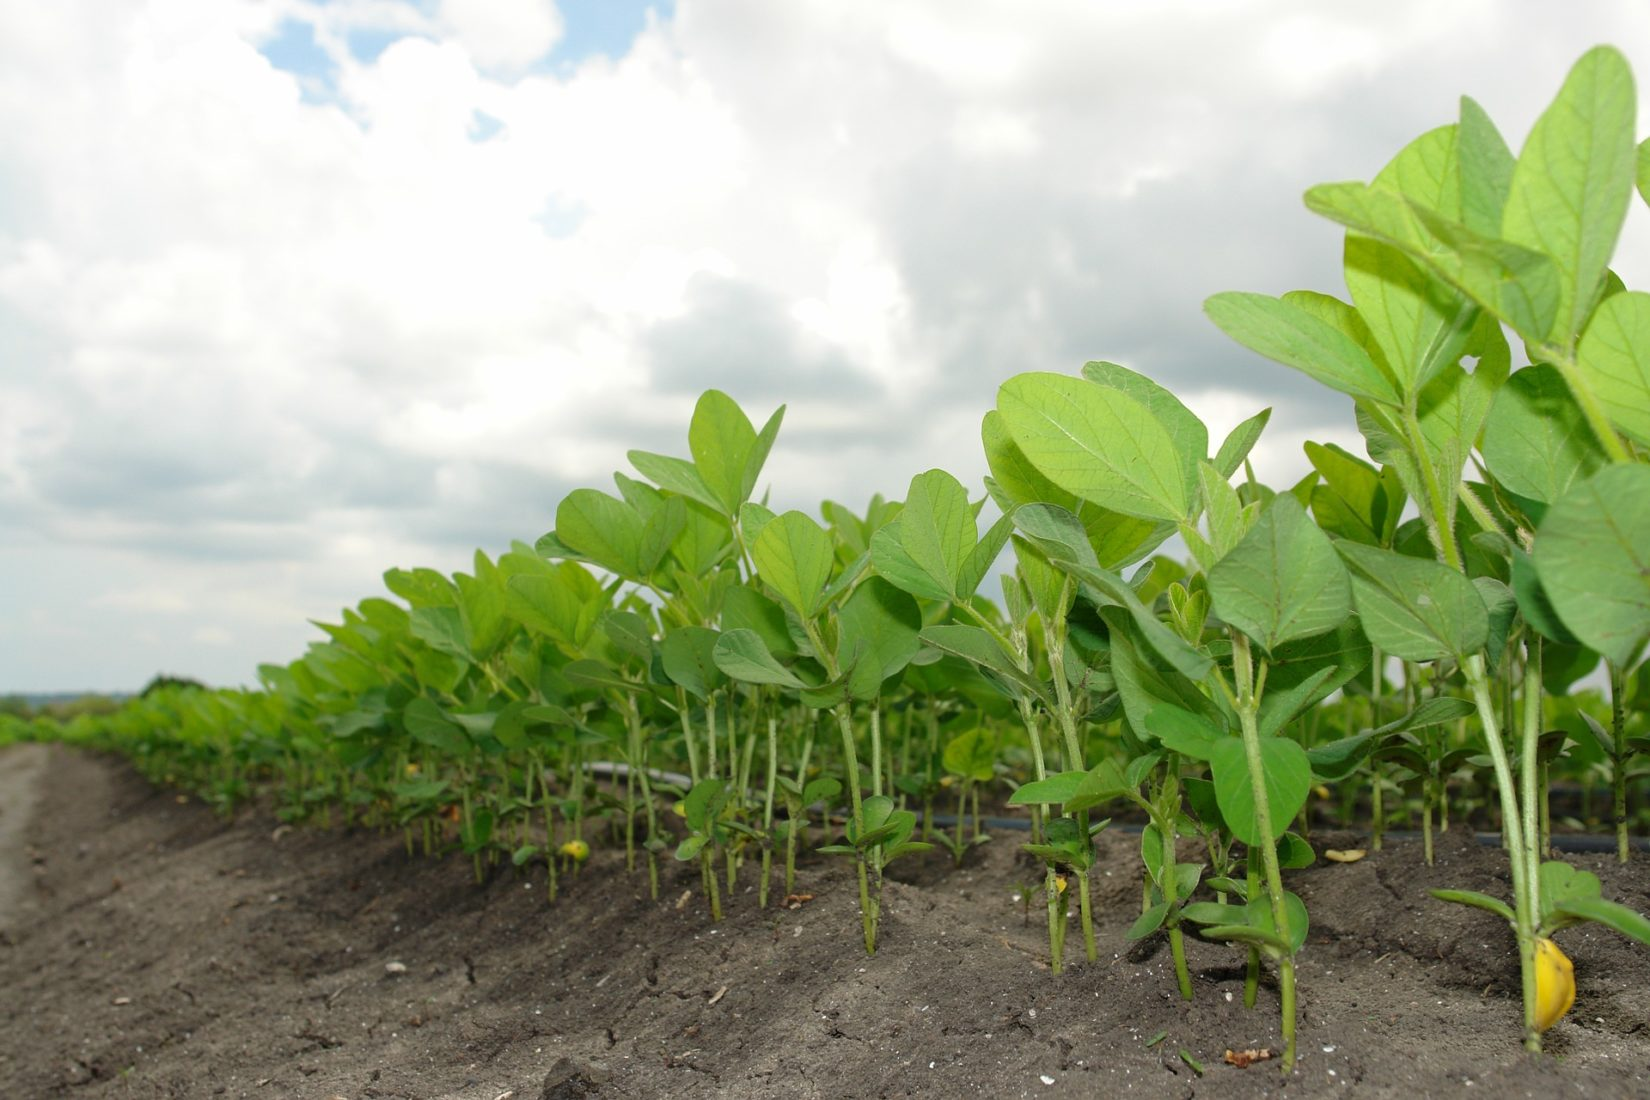 Trade War Disruption Threatens Already Vulnerable Soybean Producers & Supply Chain